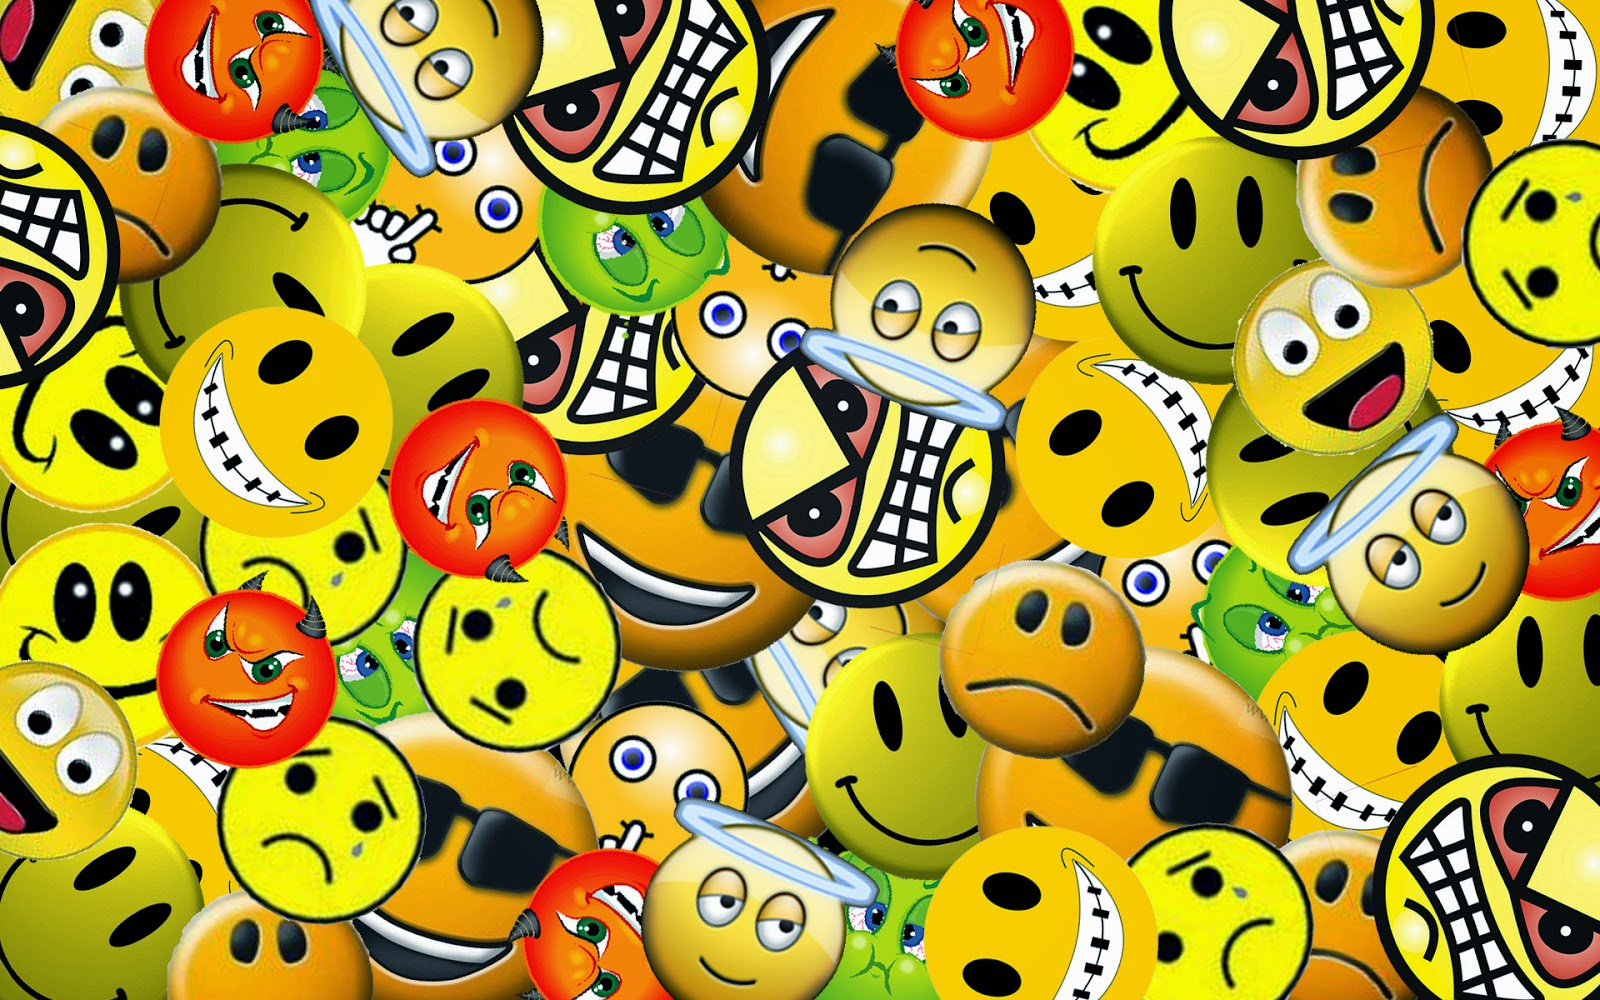 one-sad-smiley-face-between-many-happy-smileys